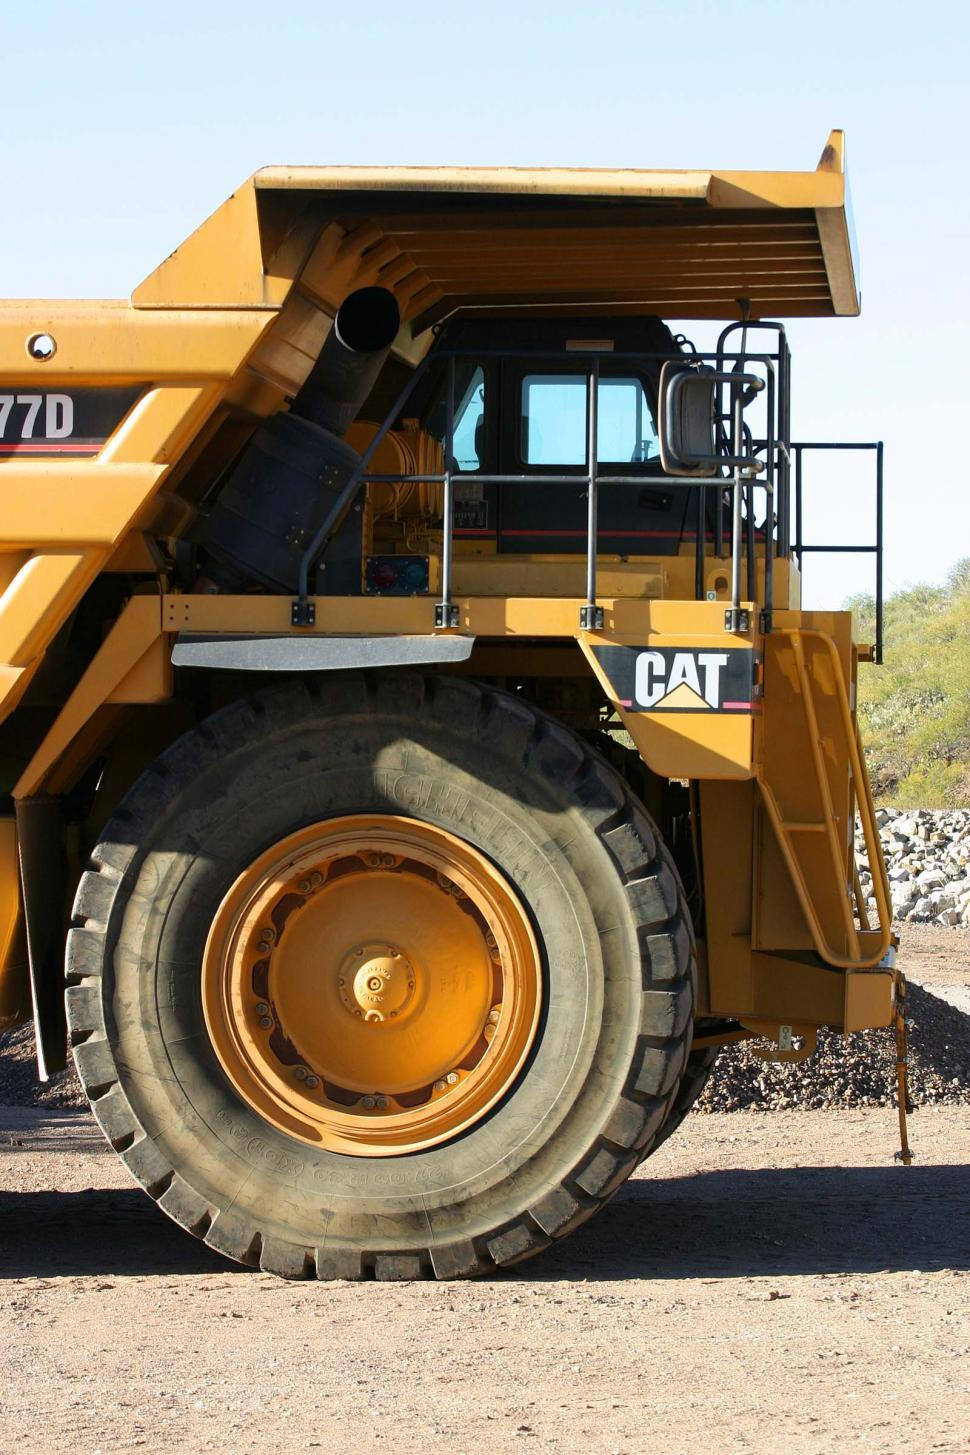 Download Free Stock HD Photo of Mining truck Online